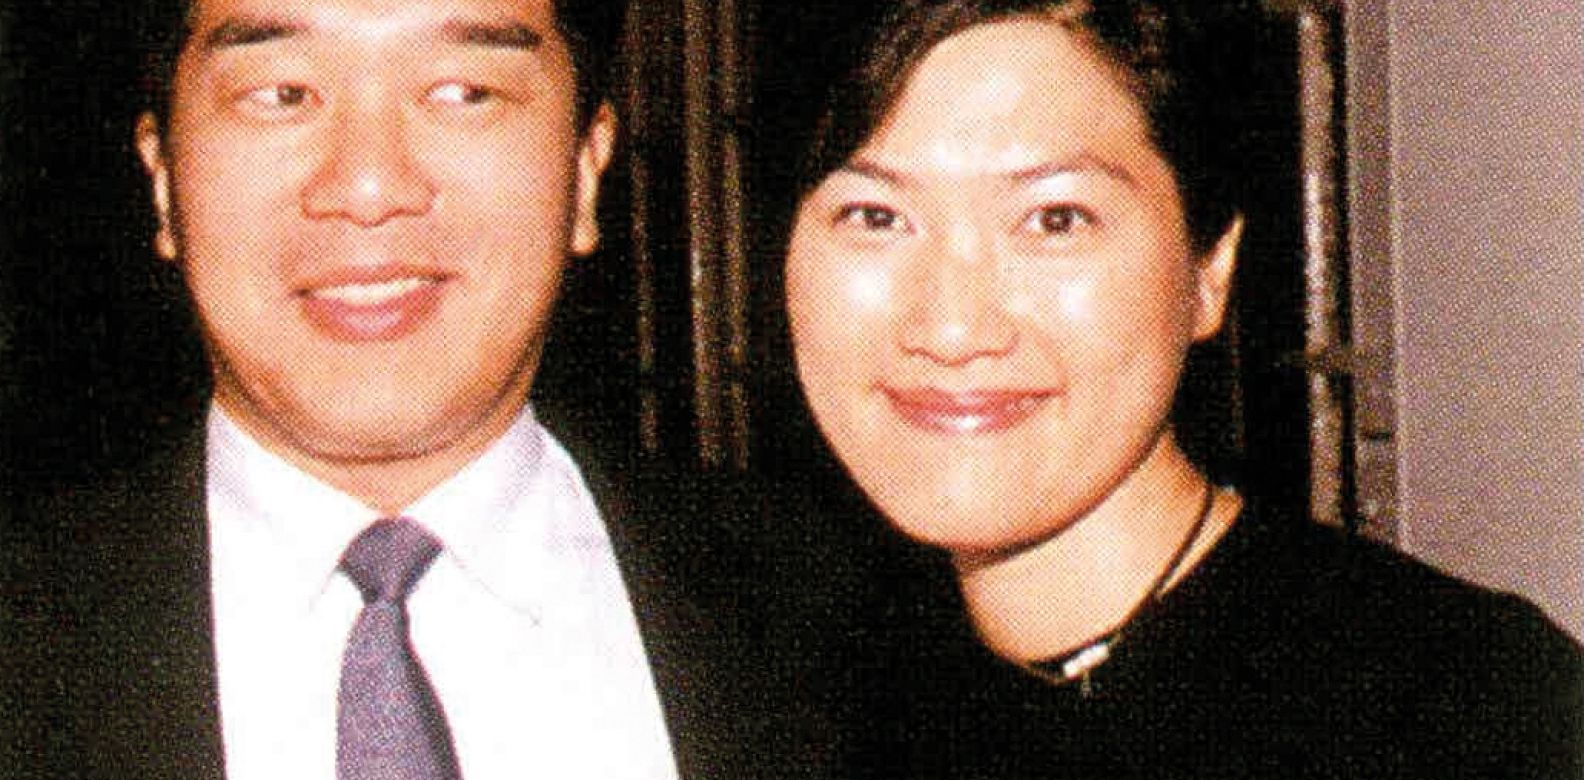 James and Su-Lee Chen at the Christian Dior fashion show held at the Helena May (1999)